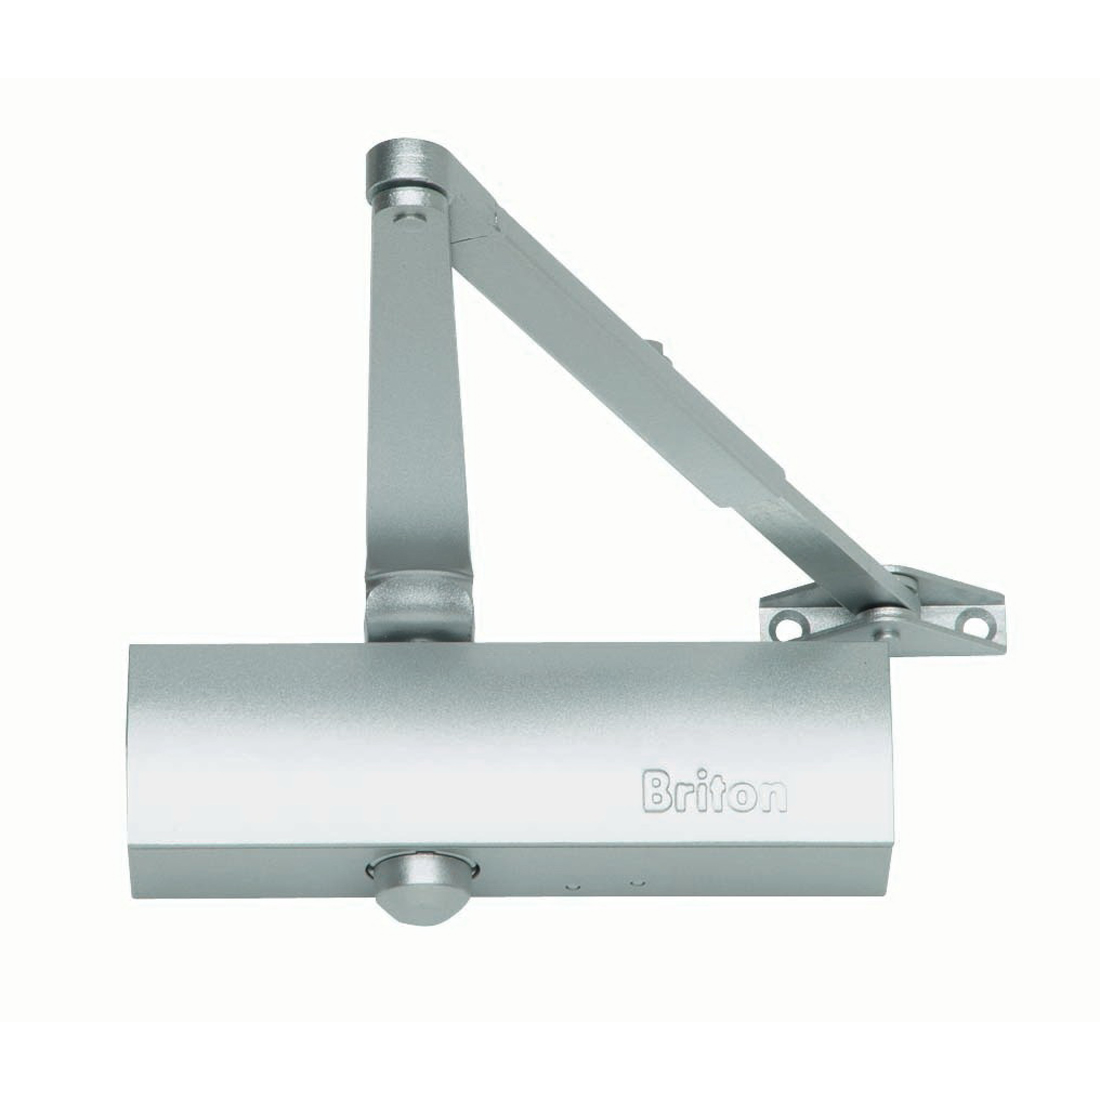 200 Series Door Closer Die-Cast Aluminium Sprayed Silver